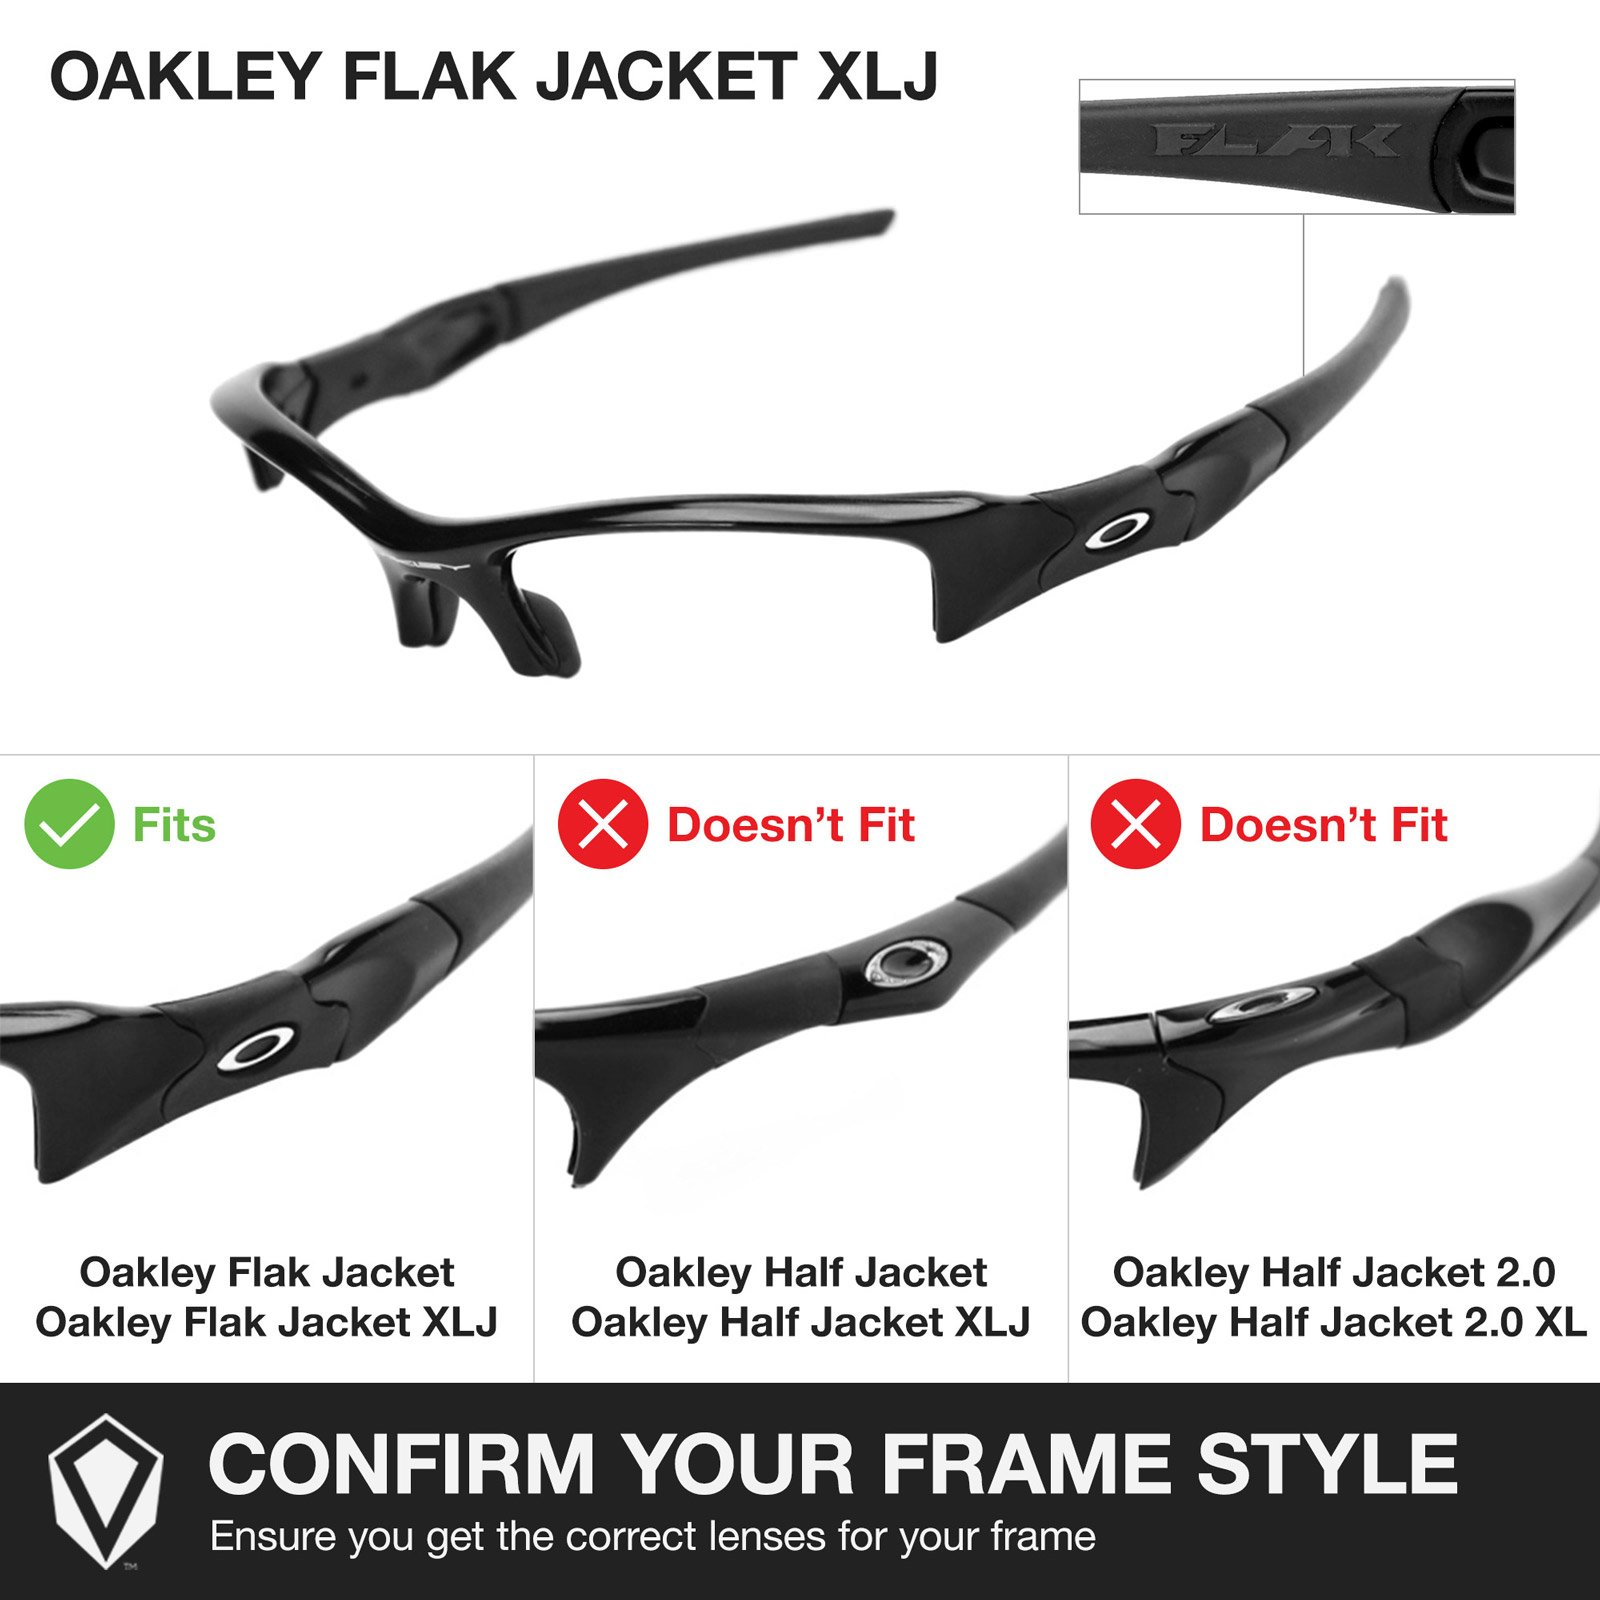 Revant Replacement Lenses for Oakley Flak Jacket XLJ 2 Pair Combo Pack K004 by Revant (Image #5)